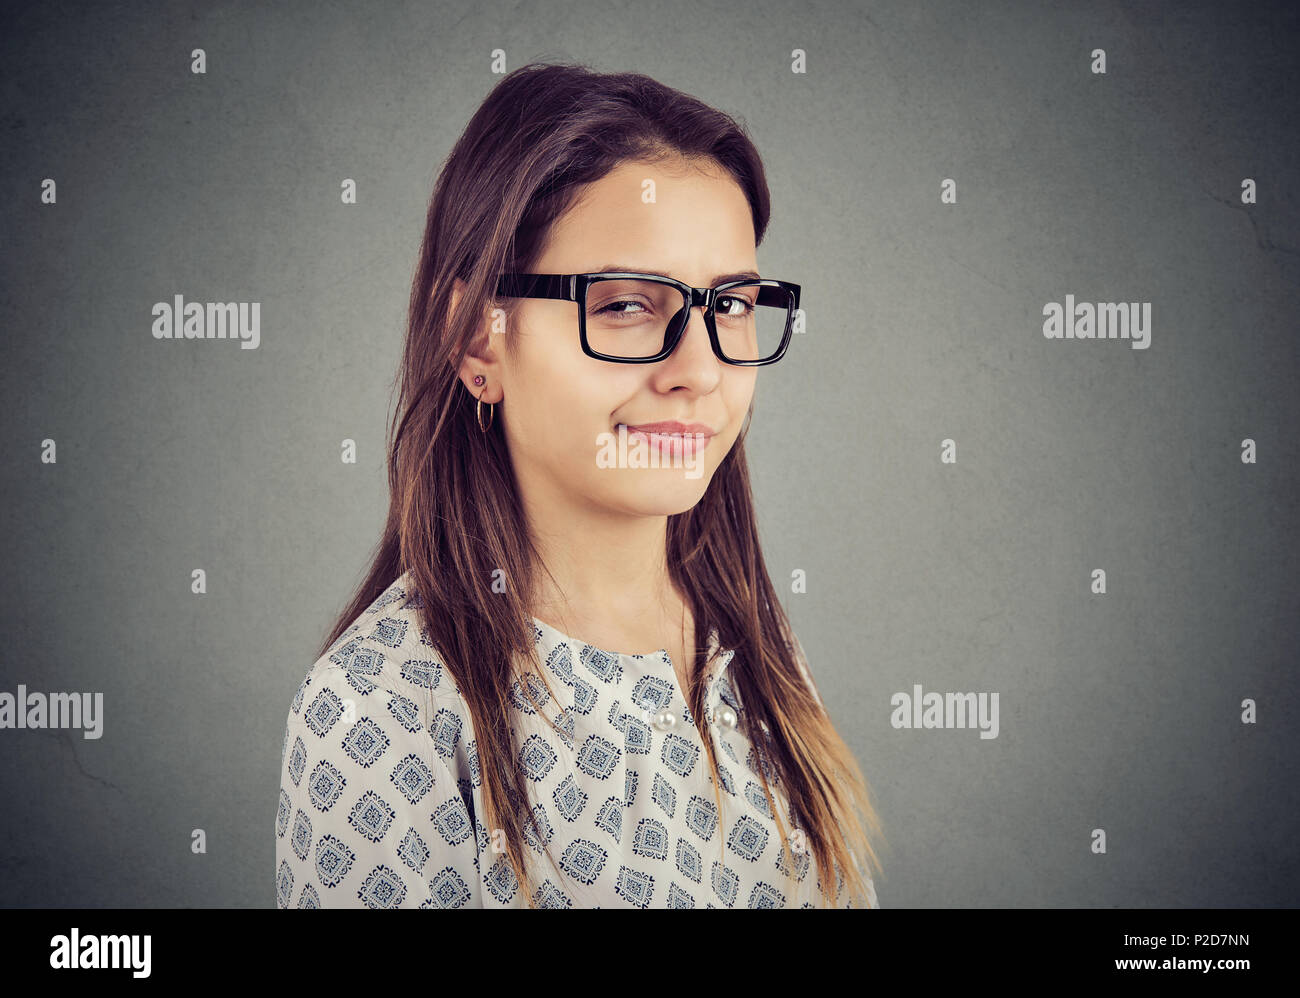 Sly tricky young woman looking at camera. Menteur concept. Photo Stock